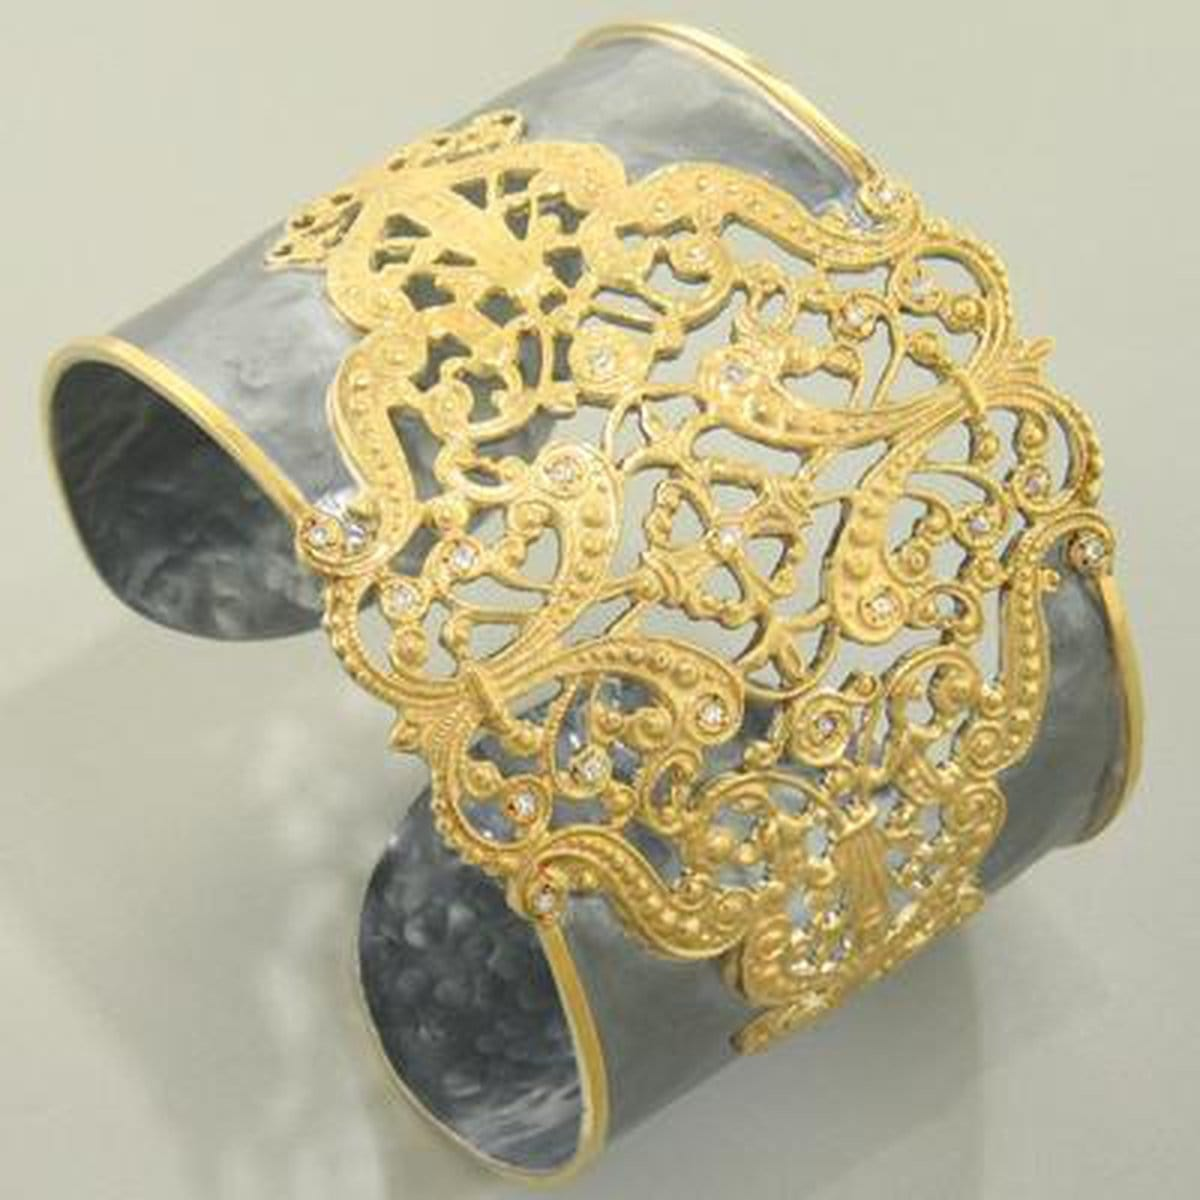 Marika Diamond, Sterling Silver & 18k Gold Cuff - MS18218-Marika-Renee Taylor Gallery